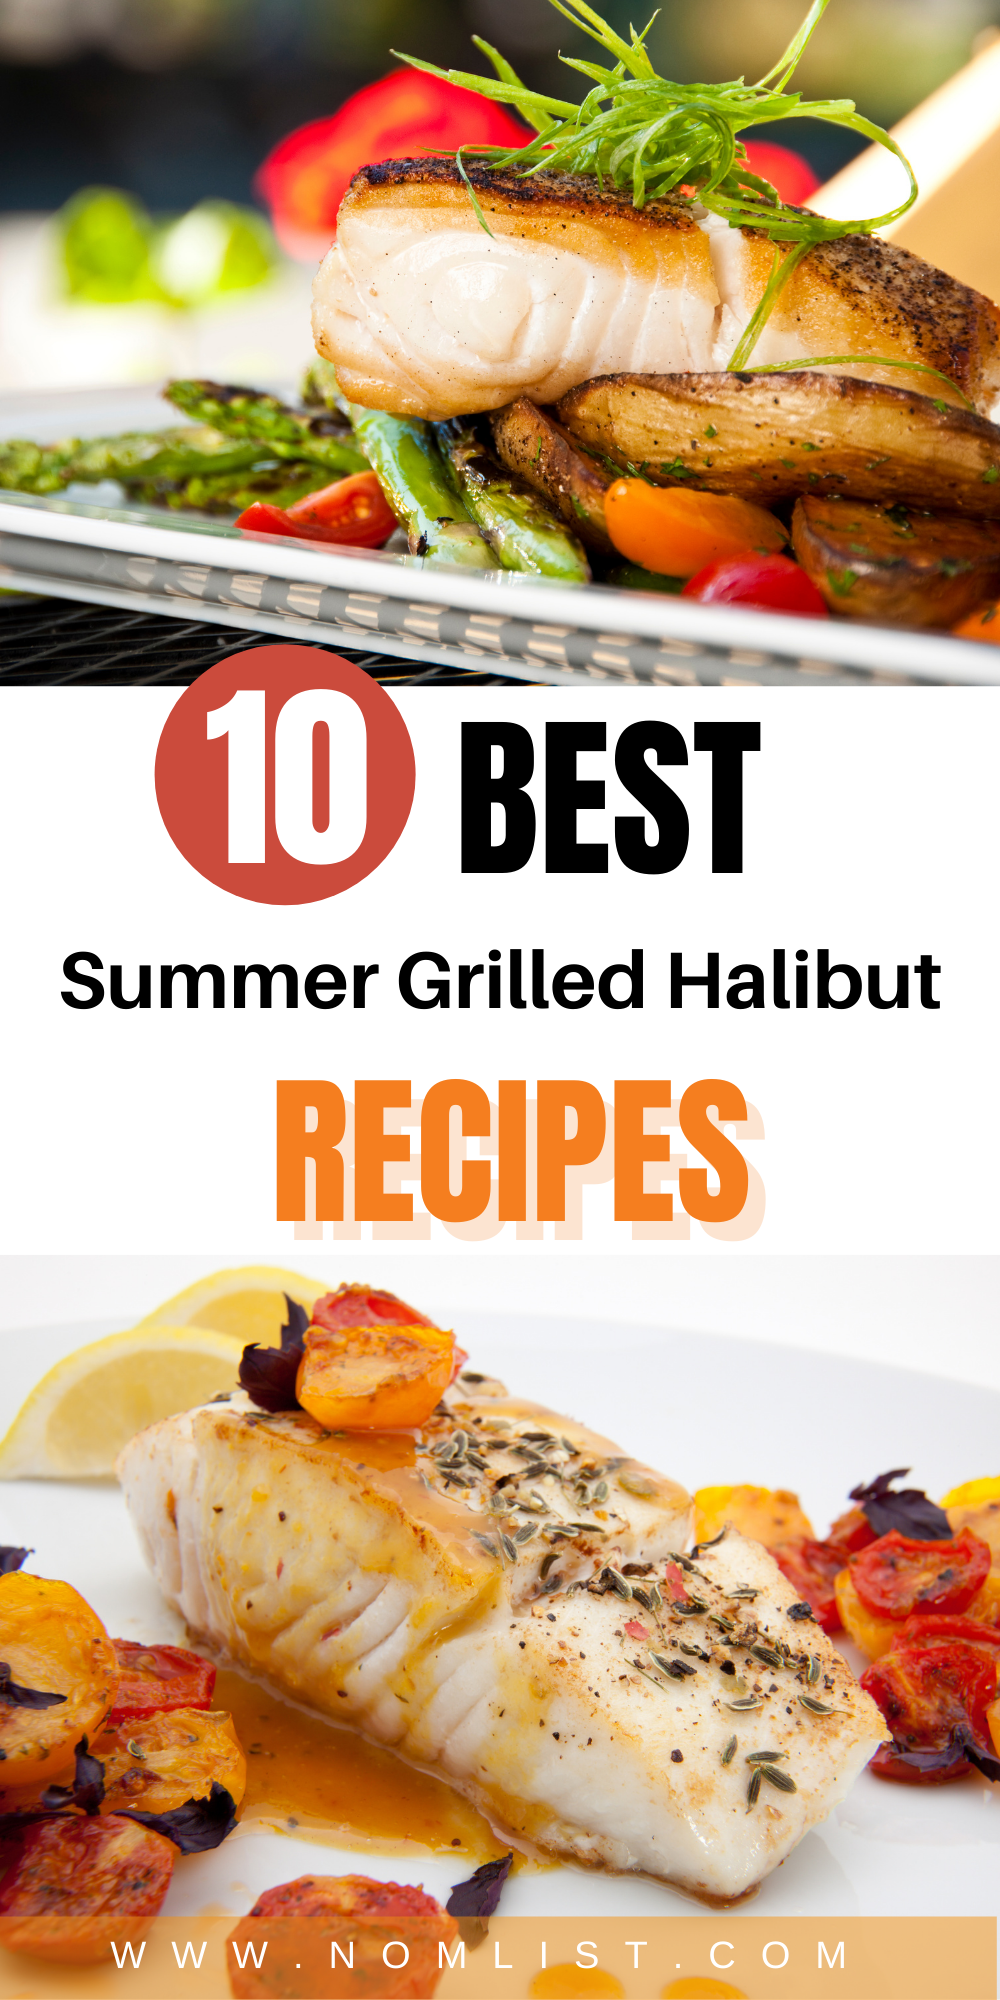 If you're looking for a delicious new way to grill halibut this summer, you're in for a treat. This scrumptious, fresh, and healthy fish is packed with flavor and the perfect way to get your grill going on the summer heat. Check out the best summer grilled halibut recipes!